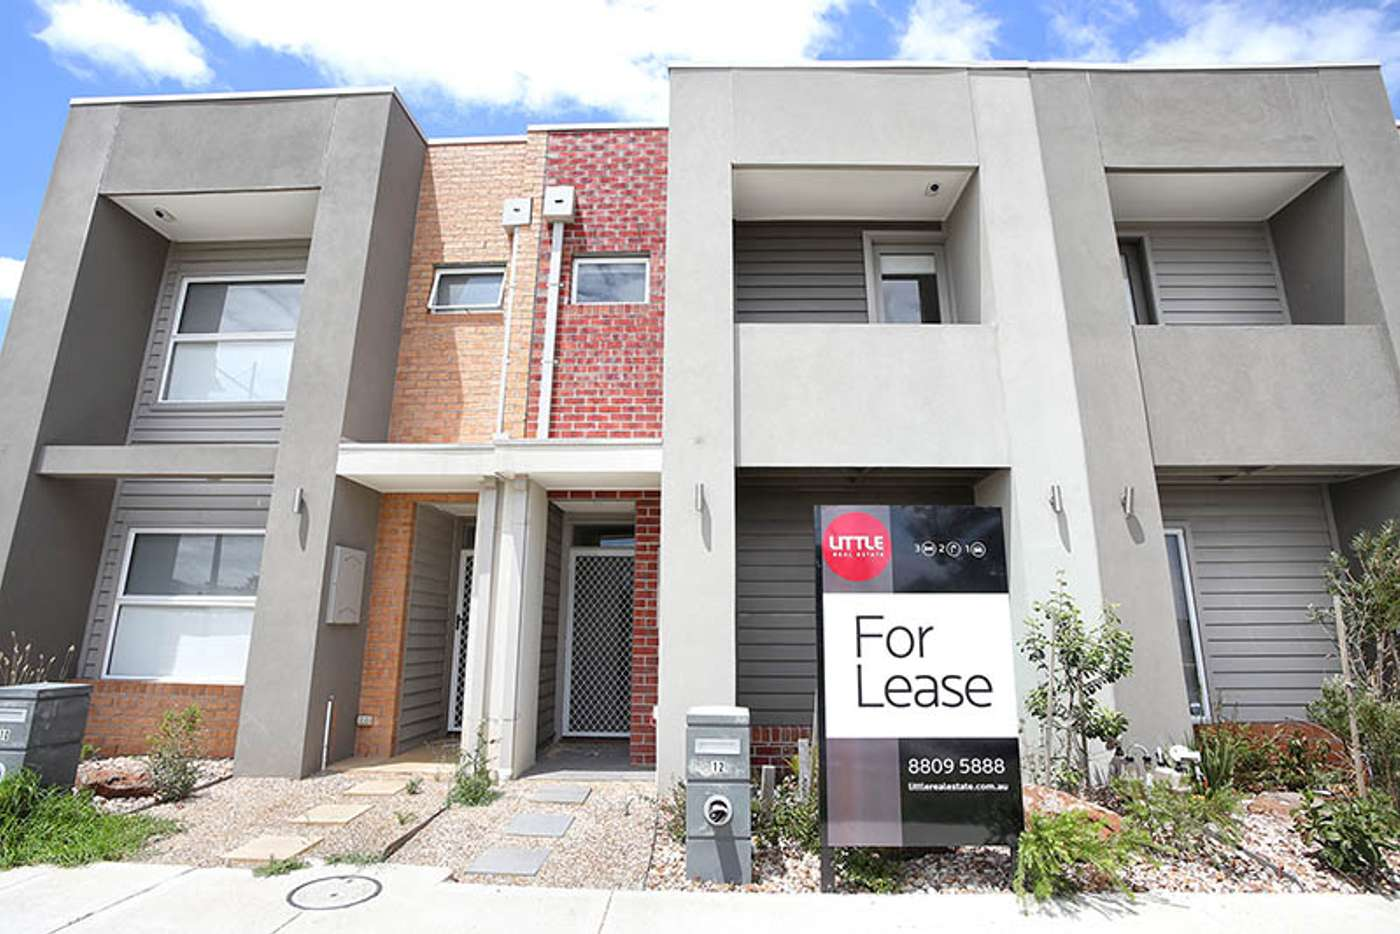 Main view of Homely townhouse listing, 12 Little Windrock Avenue, Craigieburn VIC 3064